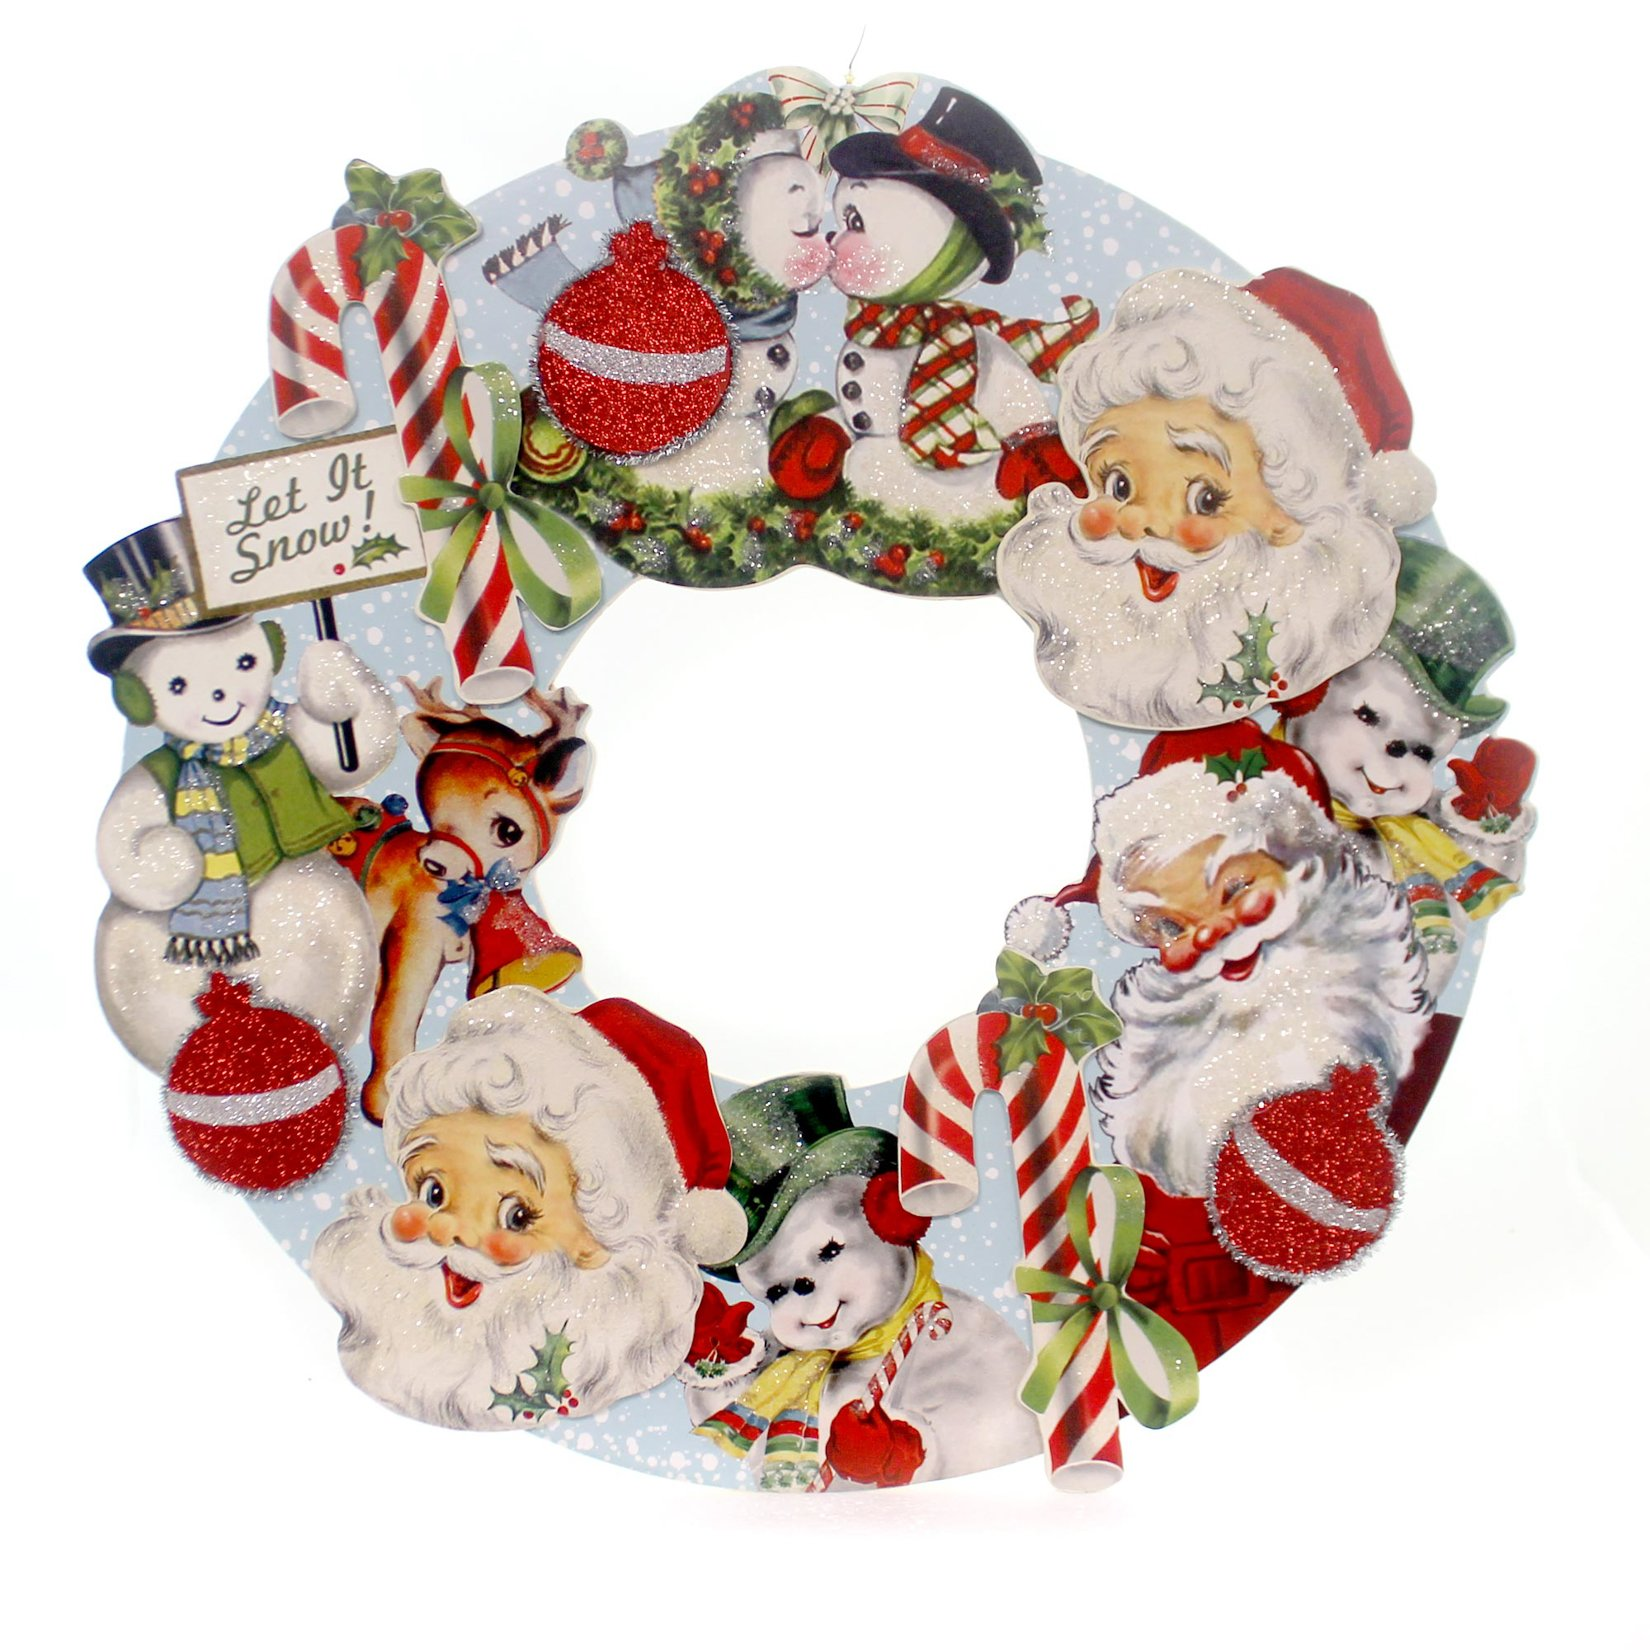 Christmas Retro DIE Cut Wreath Wood Santa Snowman Candy Canes Rl2905